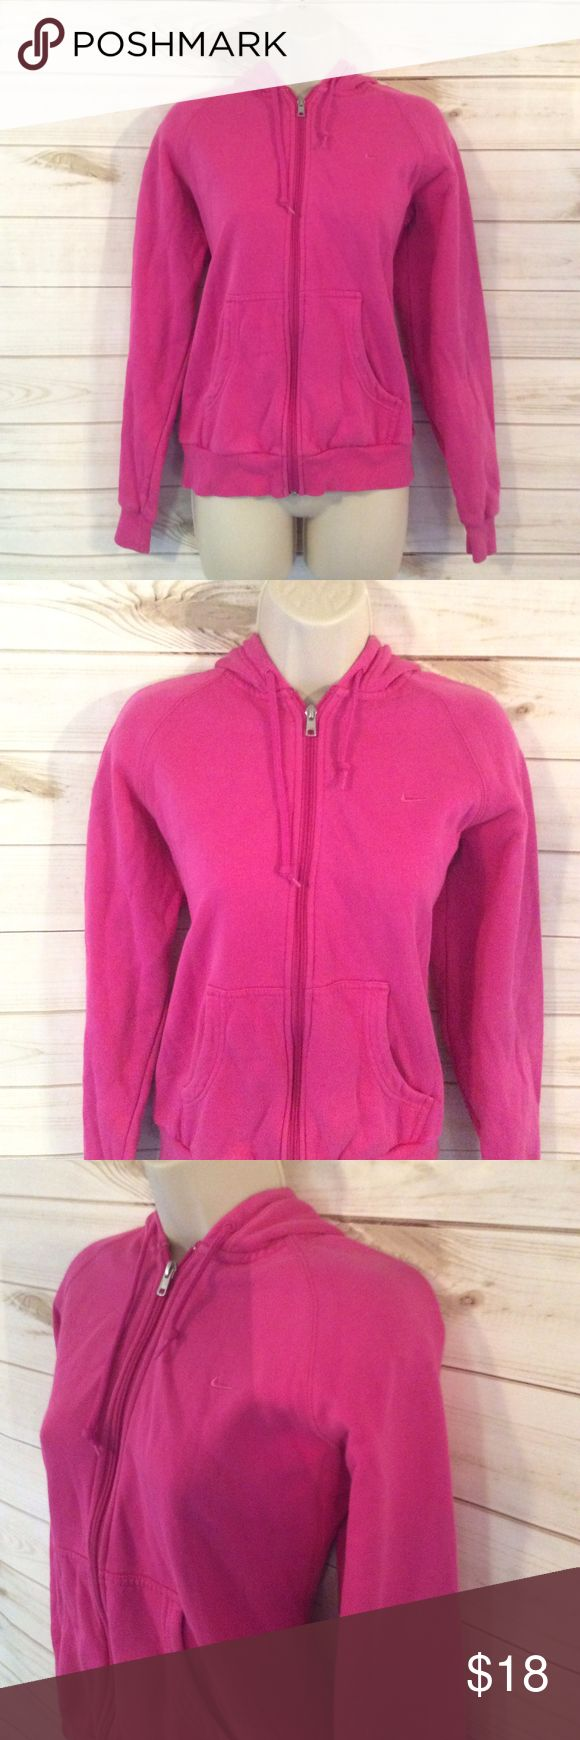 The 25  best Pink women's zip ups ideas on Pinterest | Red women's ...